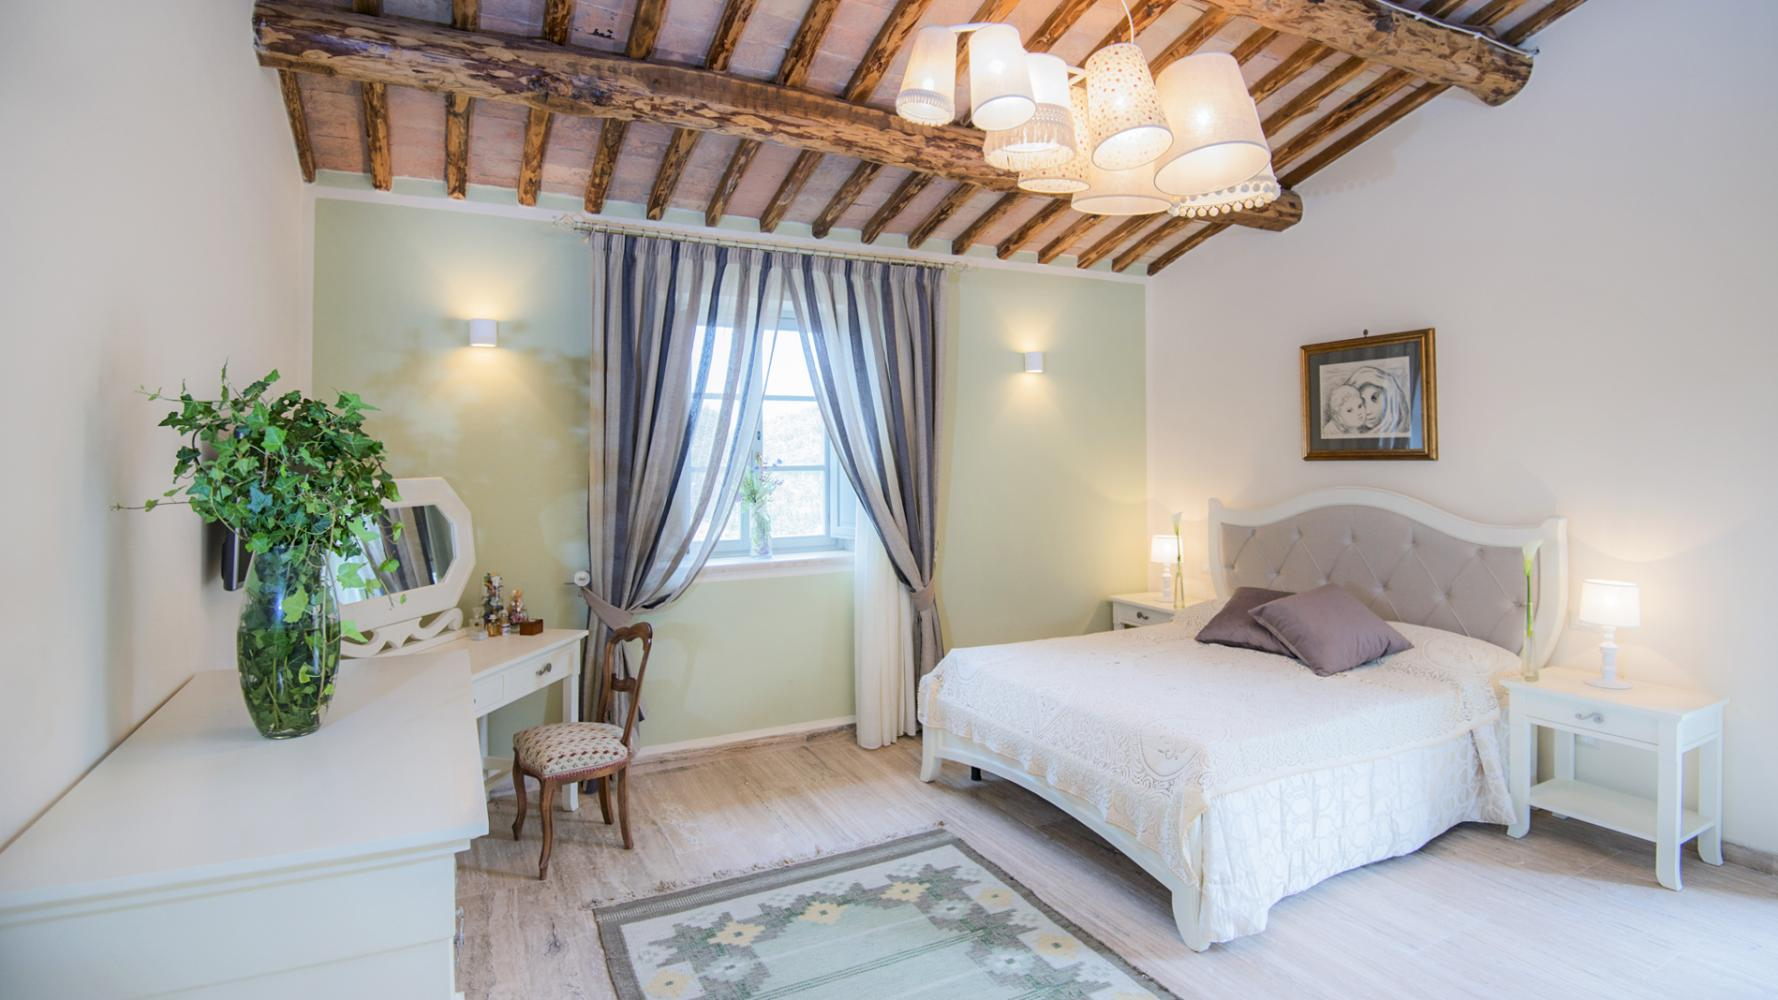 Casale Cocca in Montepulciano - sleeps 9 people